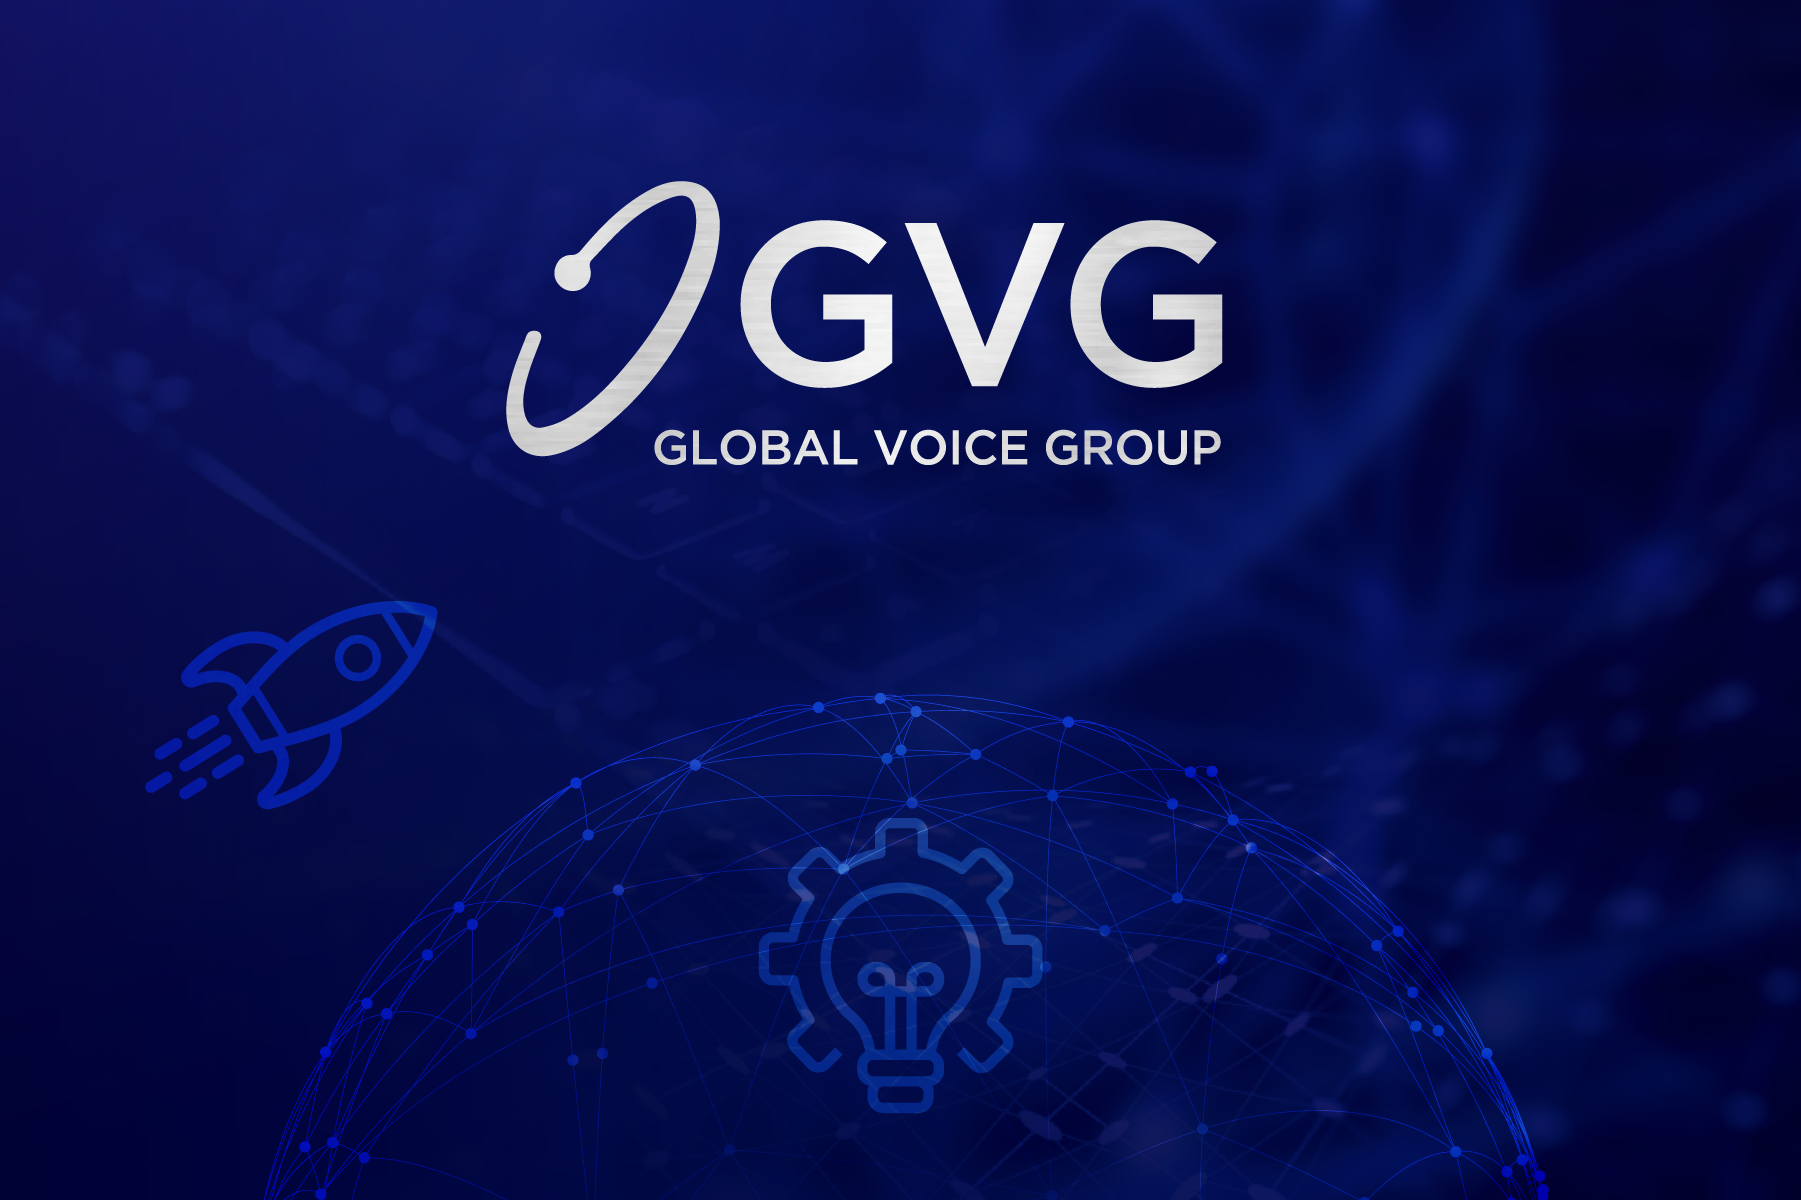 GVG seeking African reg-tech solutions for up to $300k funding support scaling their businesses